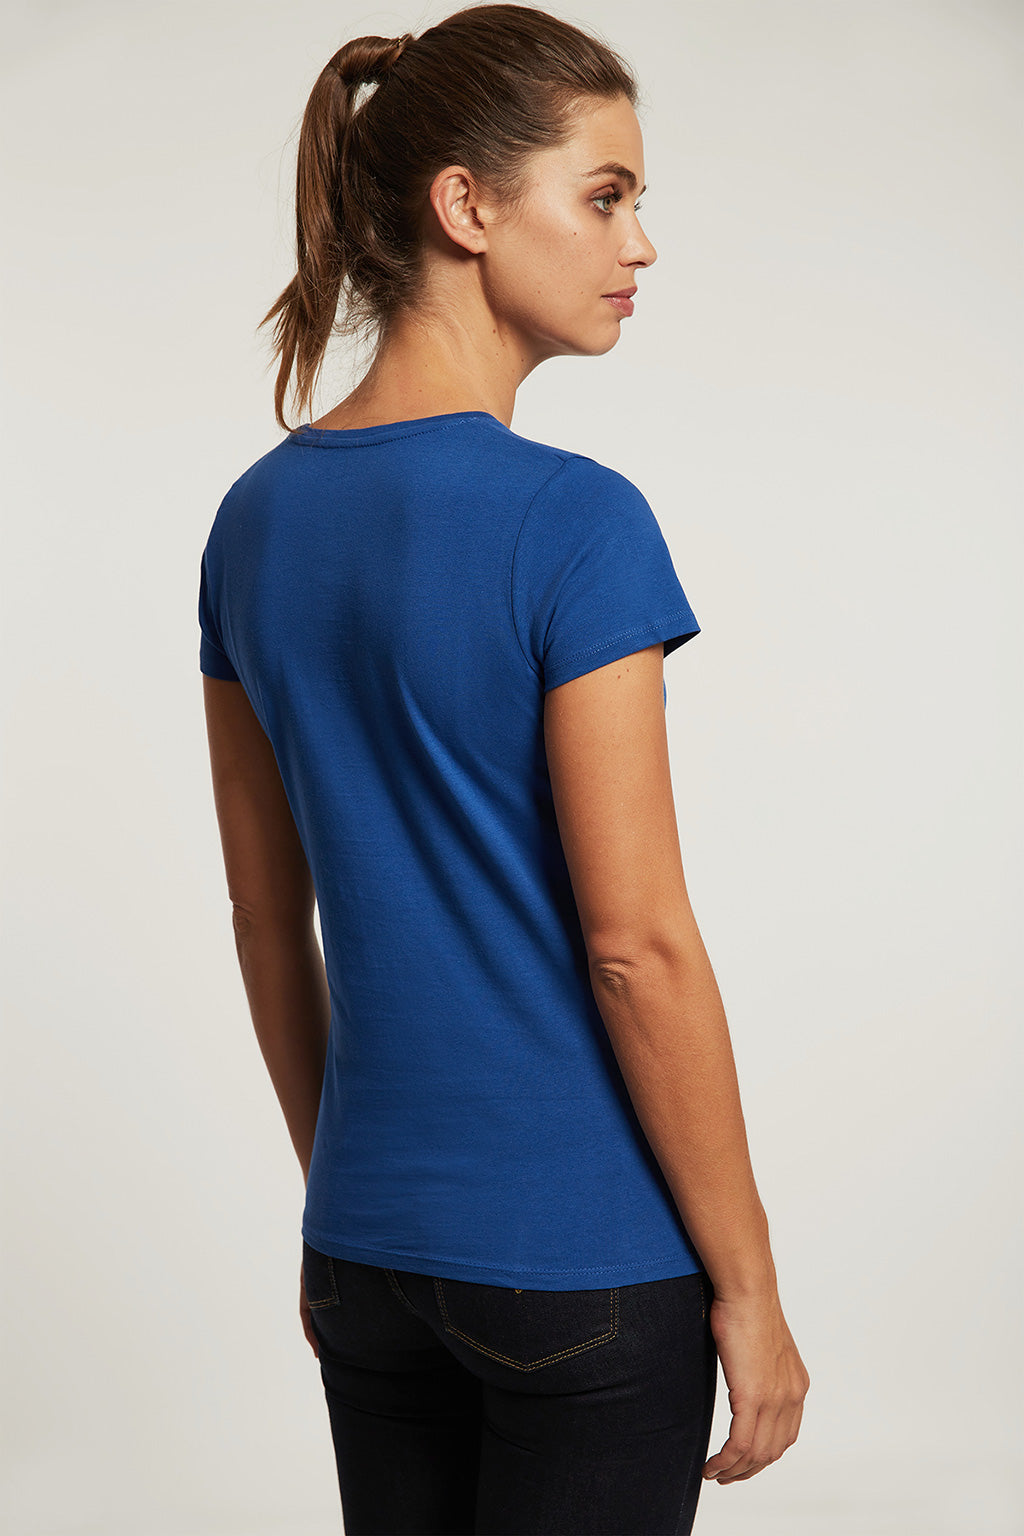 Royal blue tee with bi-coloured front print